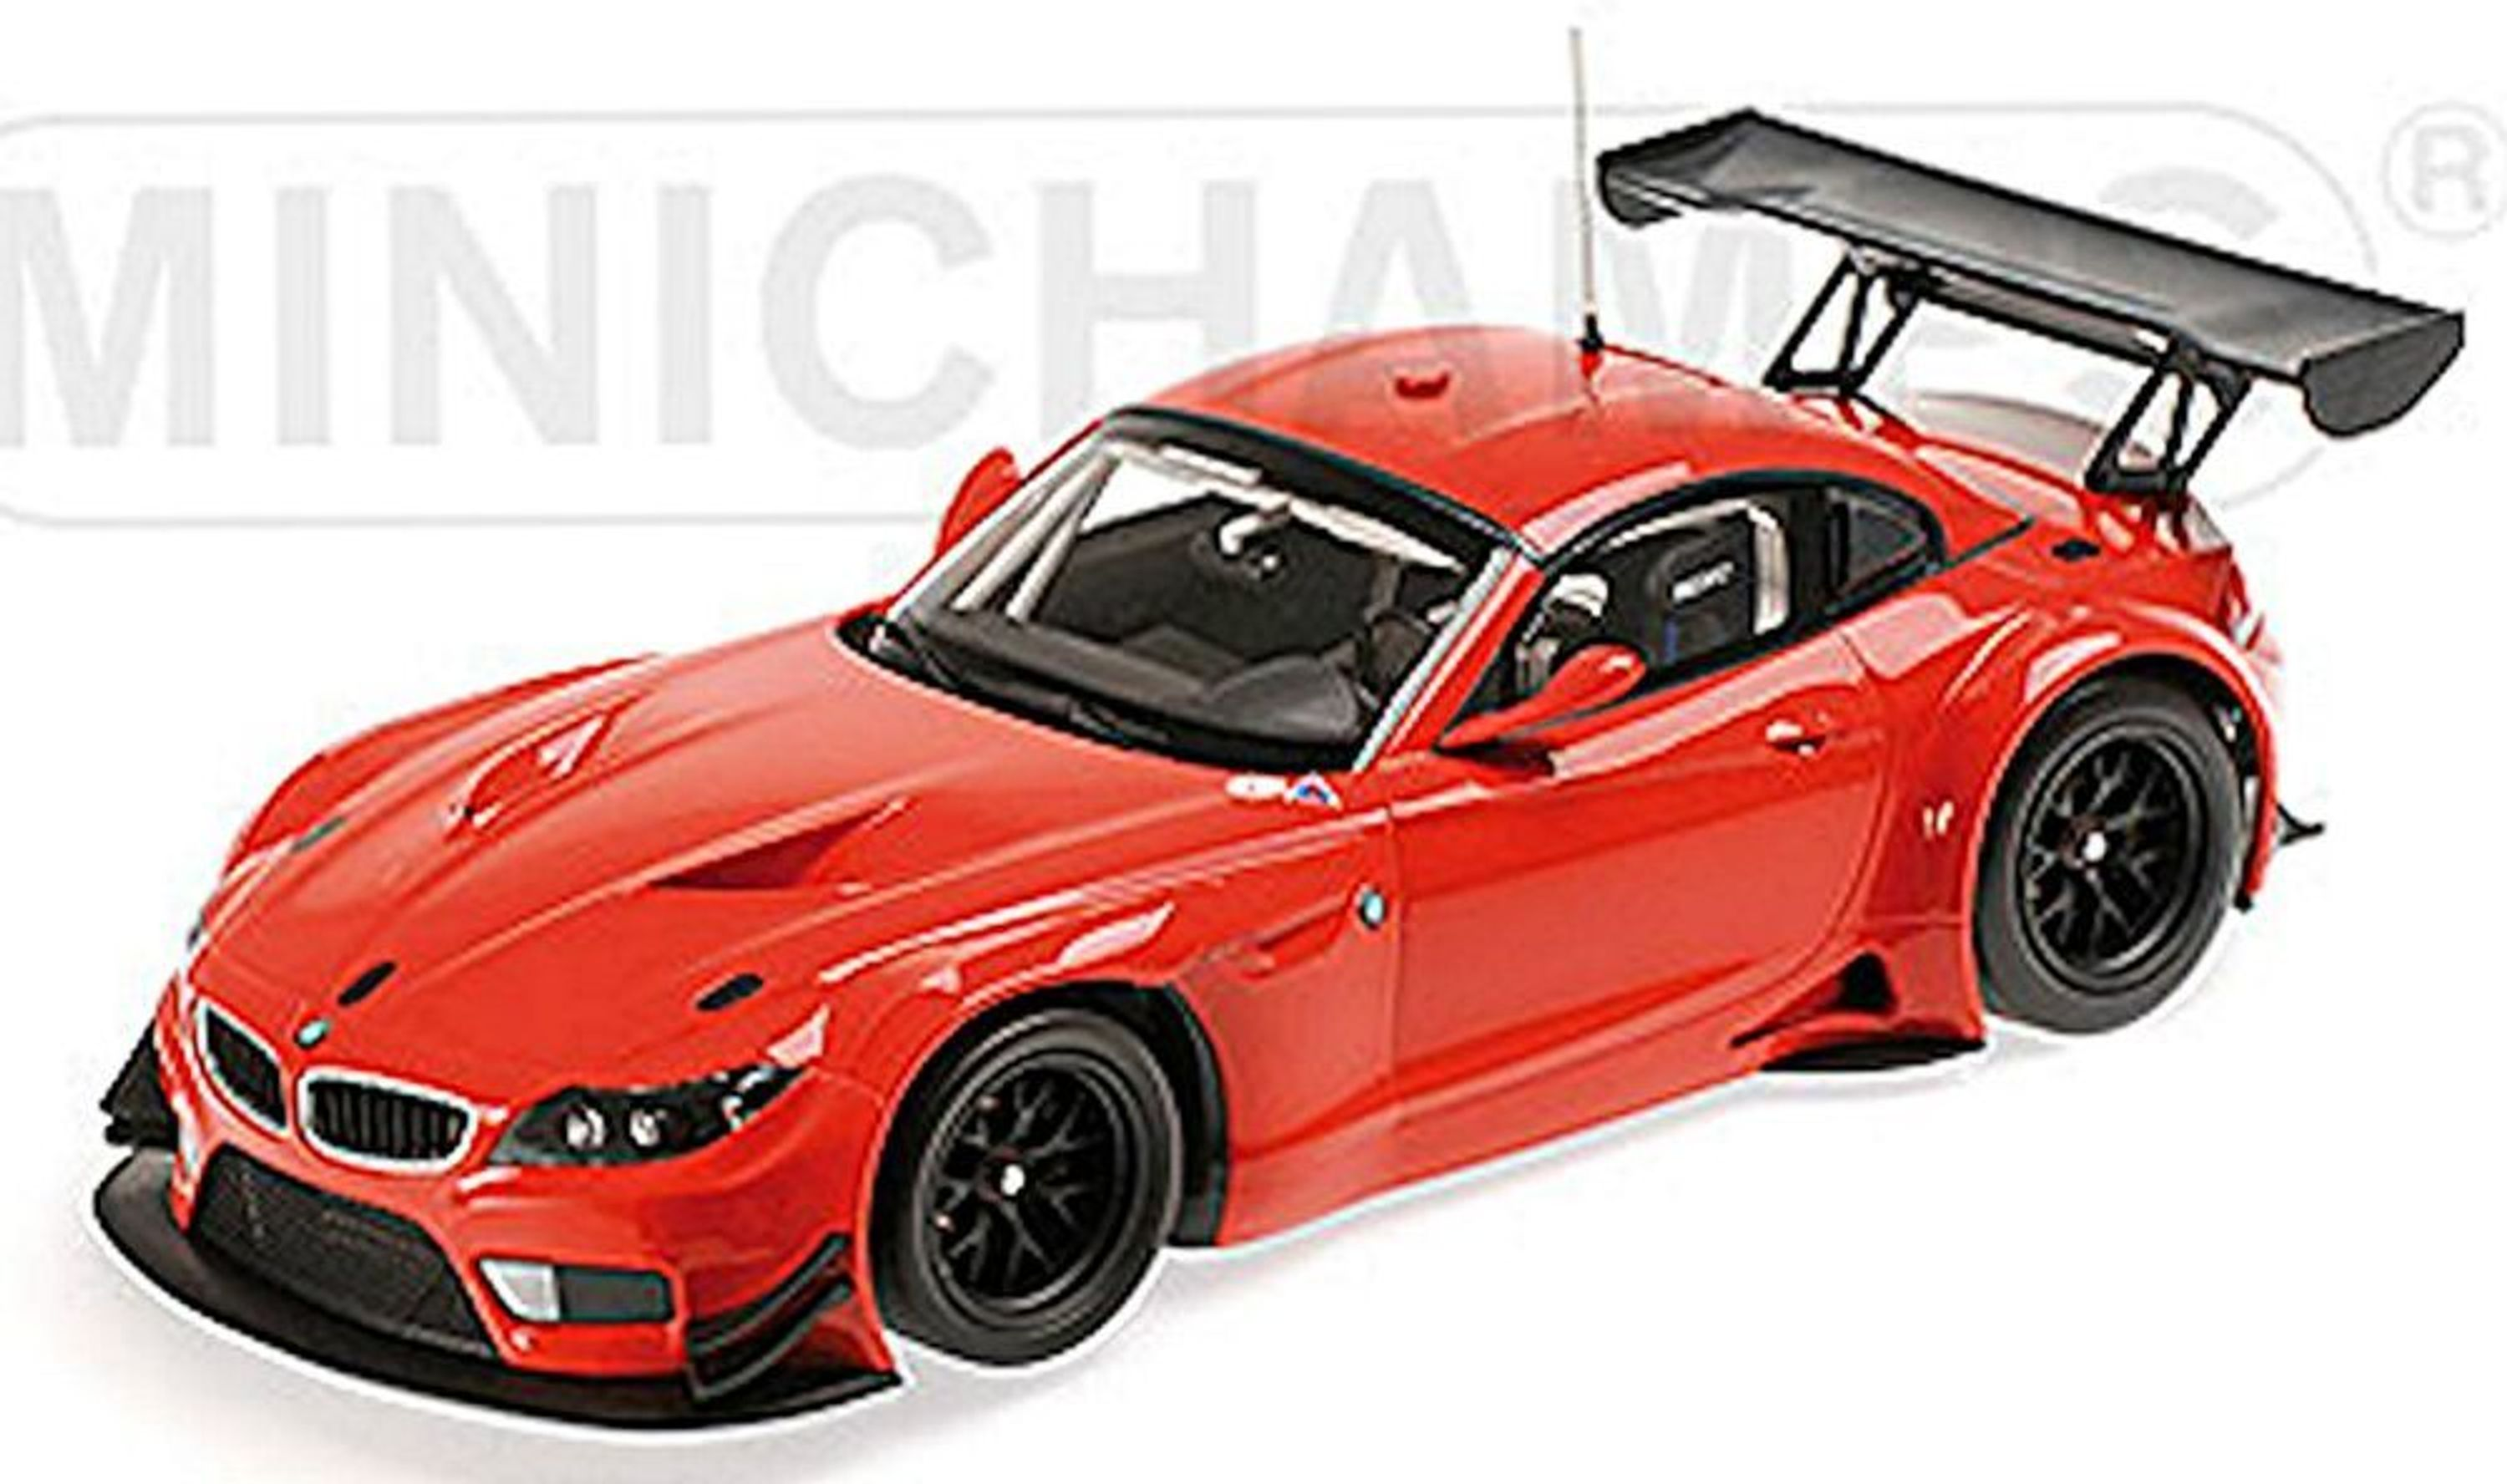 bmw z4 gt3 coupe e89 streetversion 2012 rot red 1 18 minichamps ebay. Black Bedroom Furniture Sets. Home Design Ideas